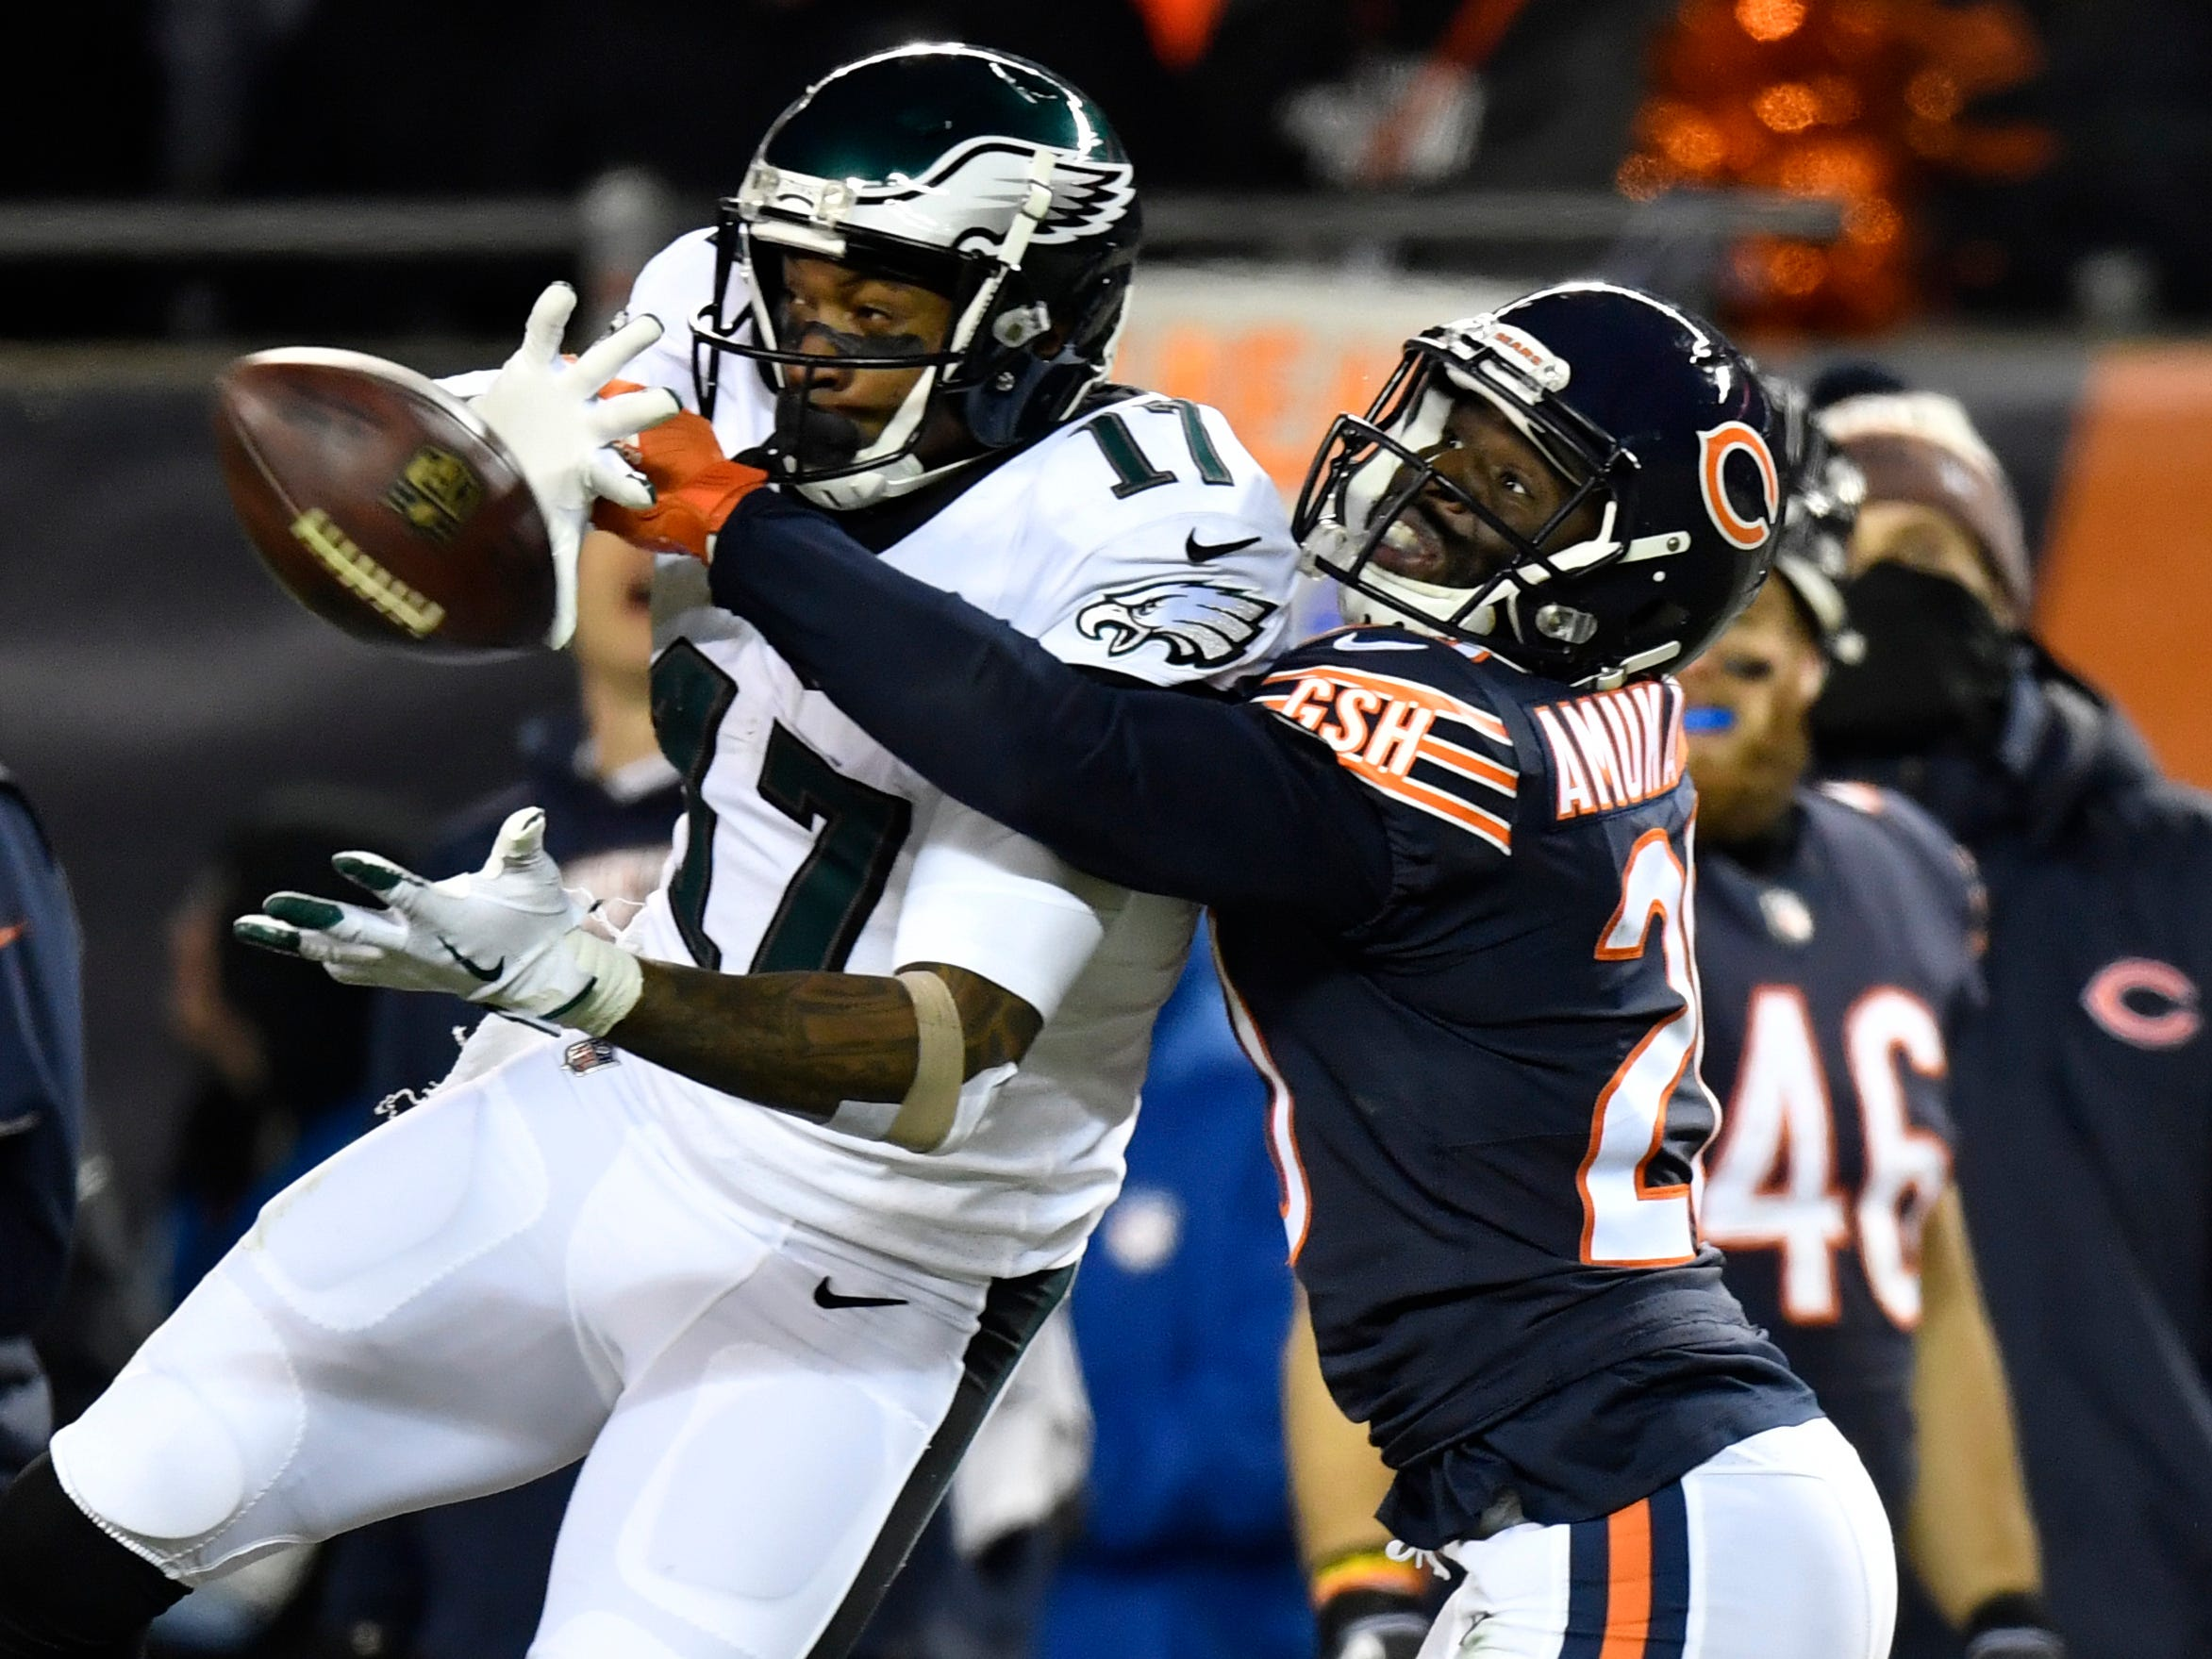 Chicago Bears cornerback Prince Amukamara breaks up a pass intended for Philadelphia Eagles wide receiver Alshon Jeffery in the wild-card game at Soldier Field.